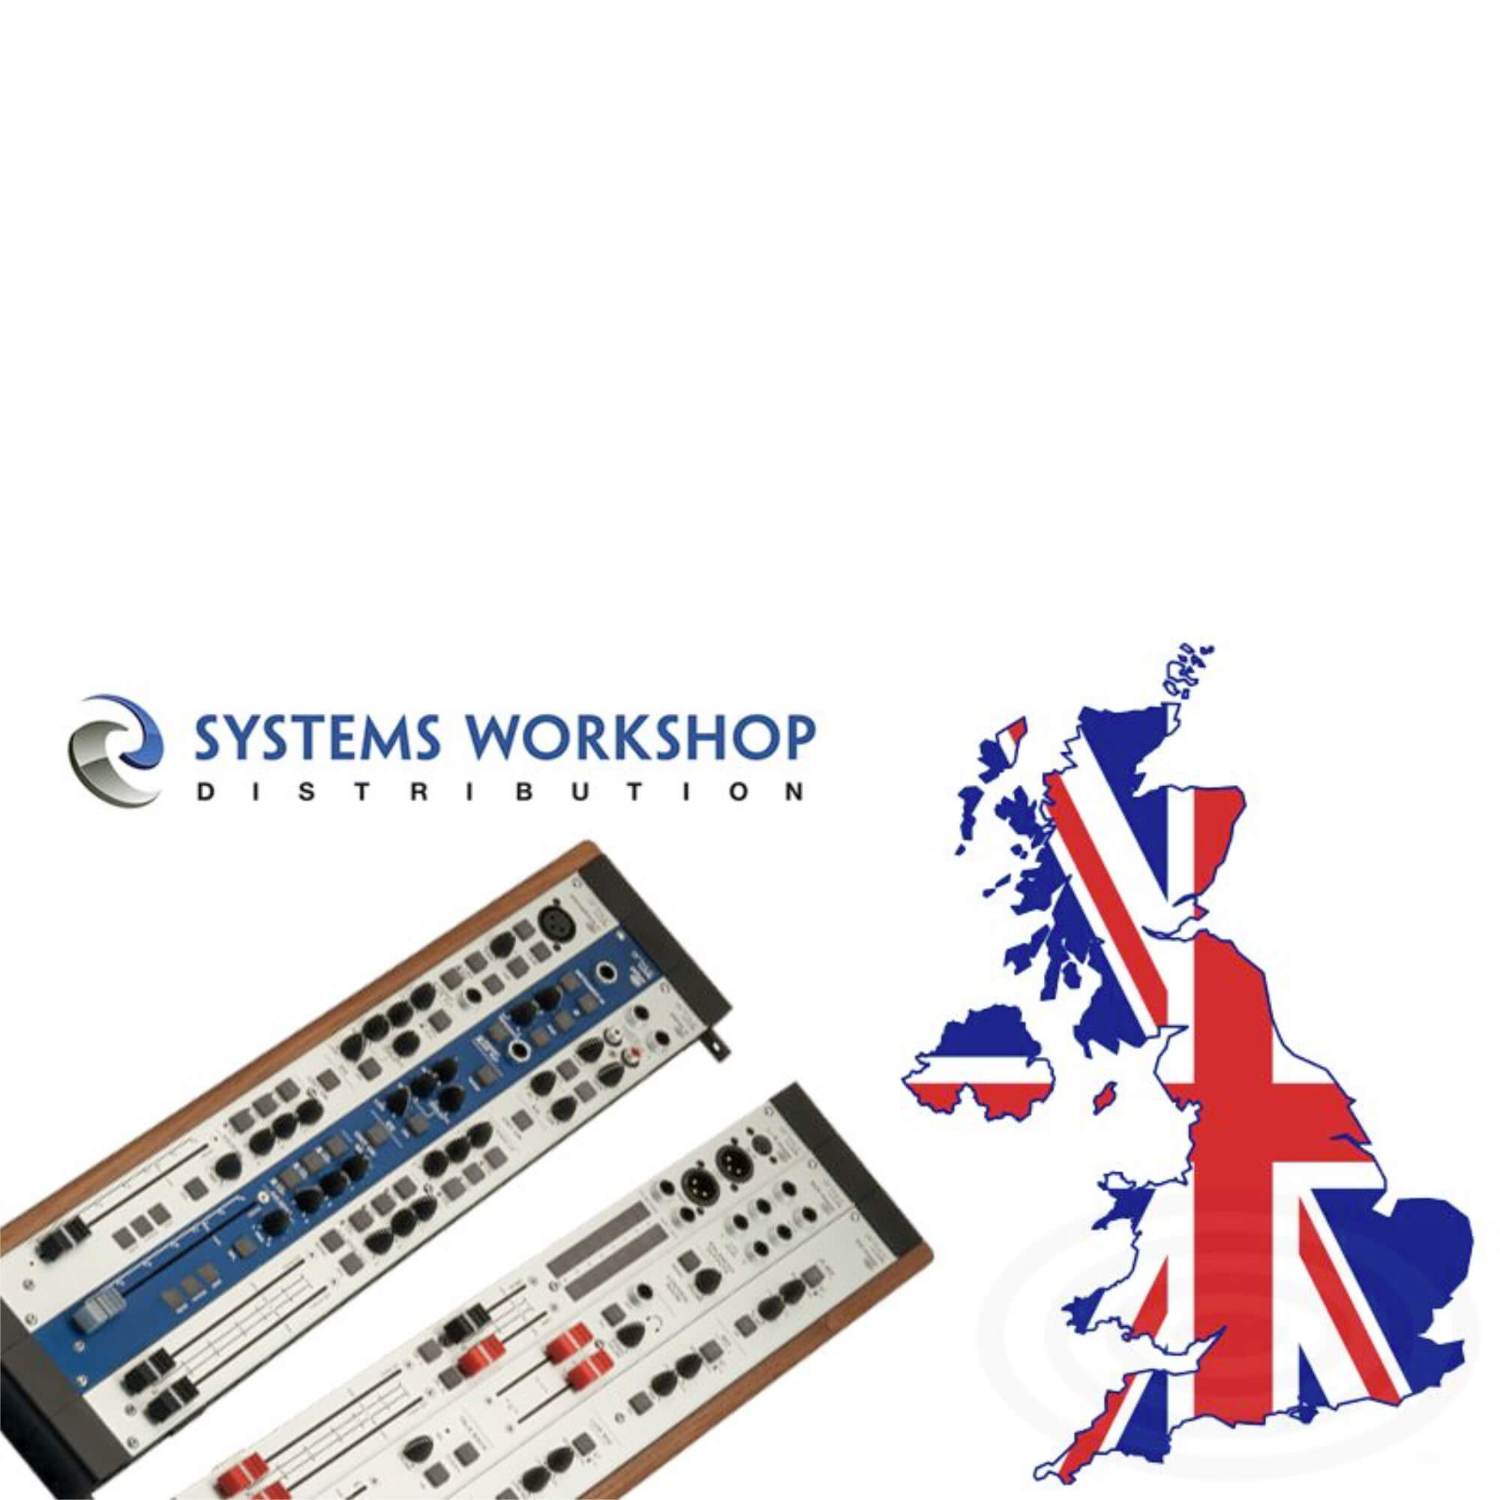 systems_workshop_800x469.jpg